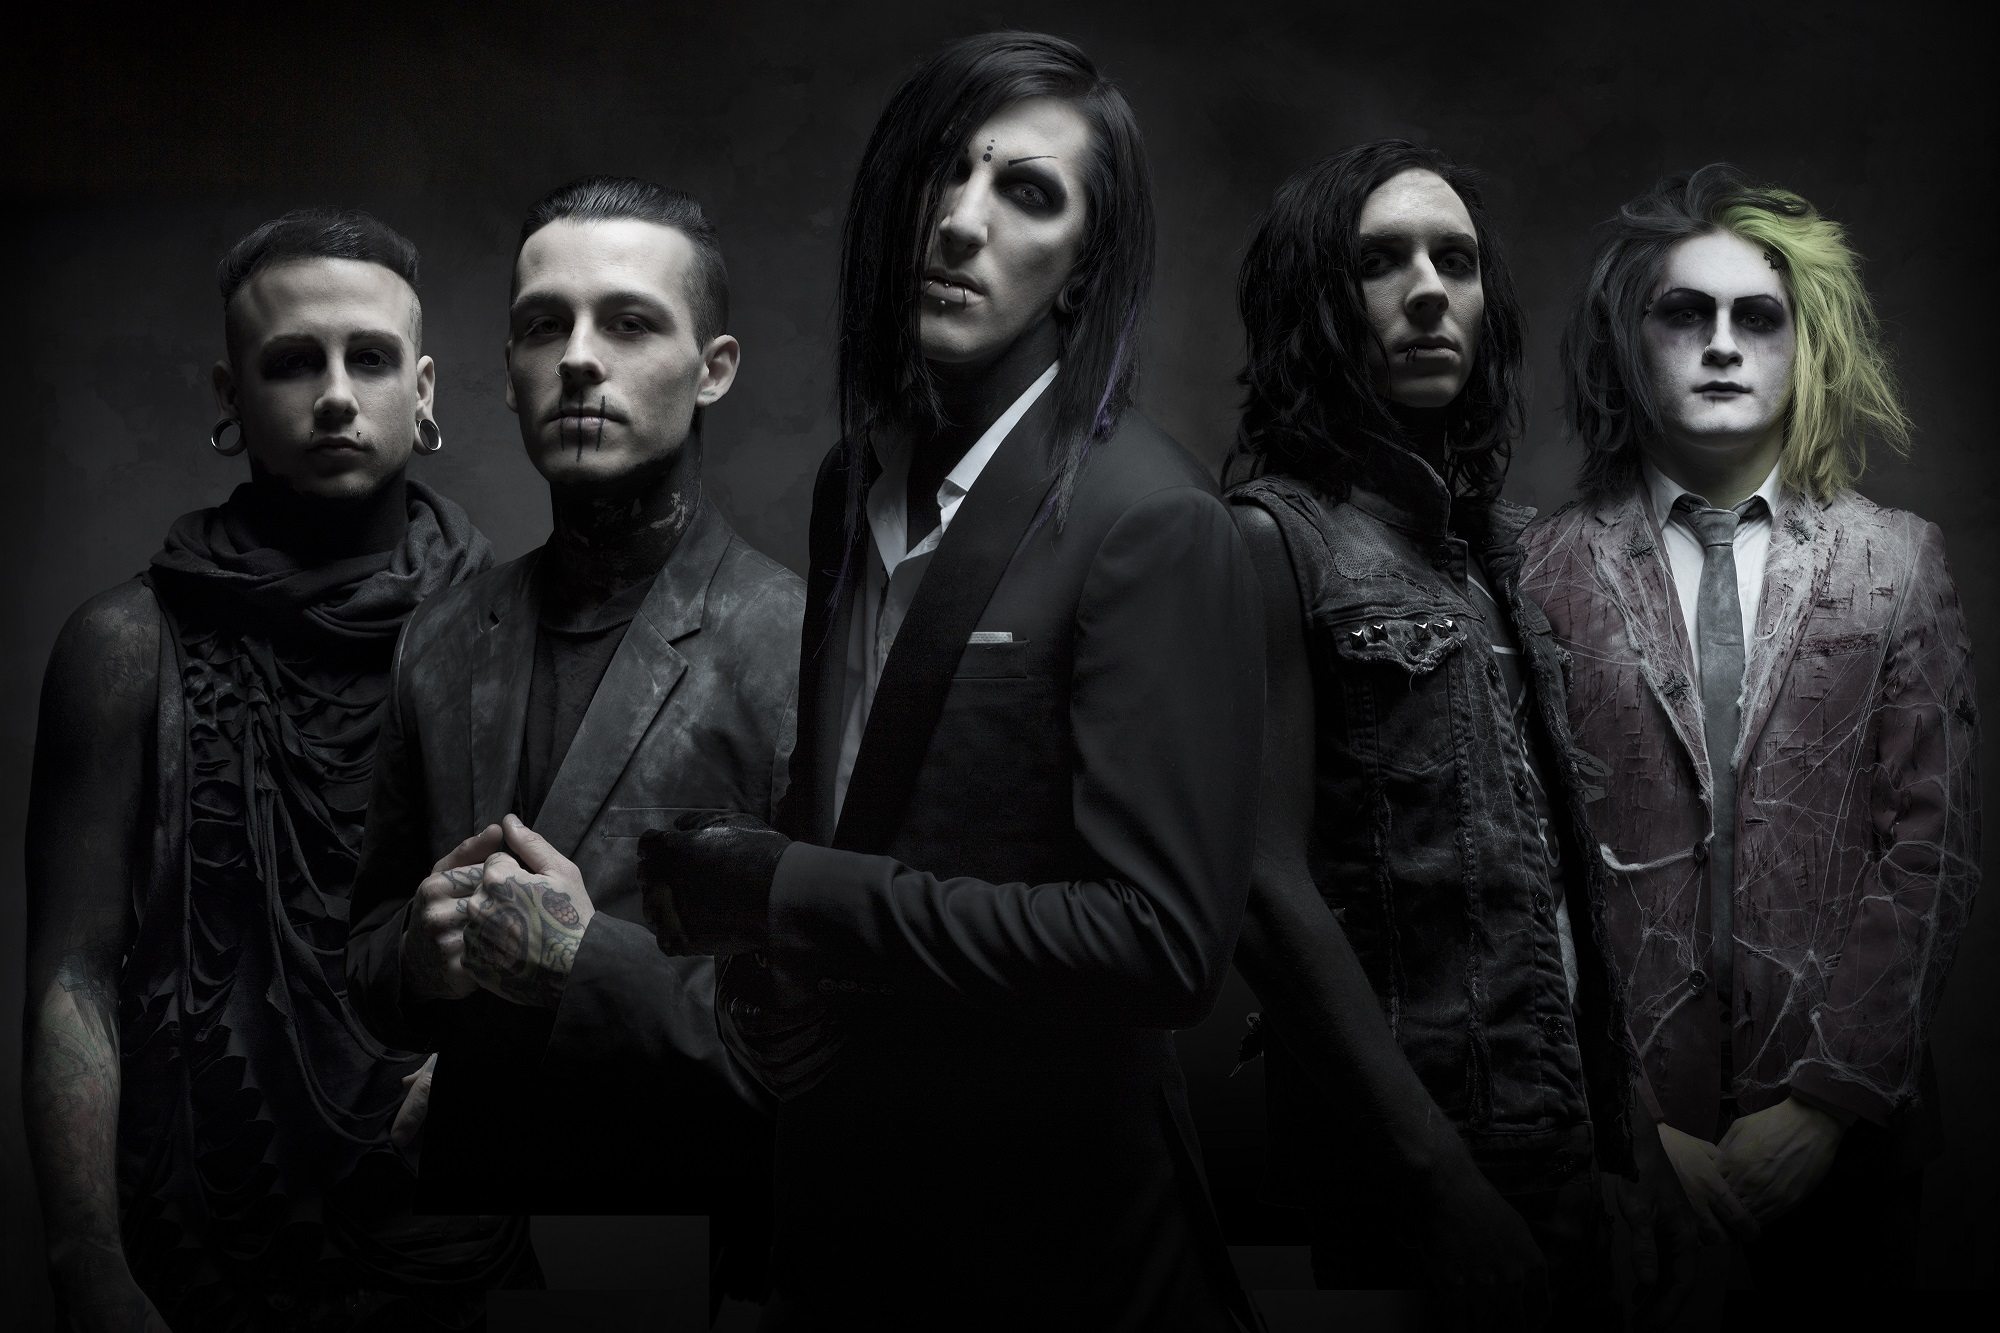 Motionless in white back in wilkes barre on dec 6 for meet and motionless in white back in wilkes barre on dec 6 for meet and greet nepa scene kristyandbryce Choice Image